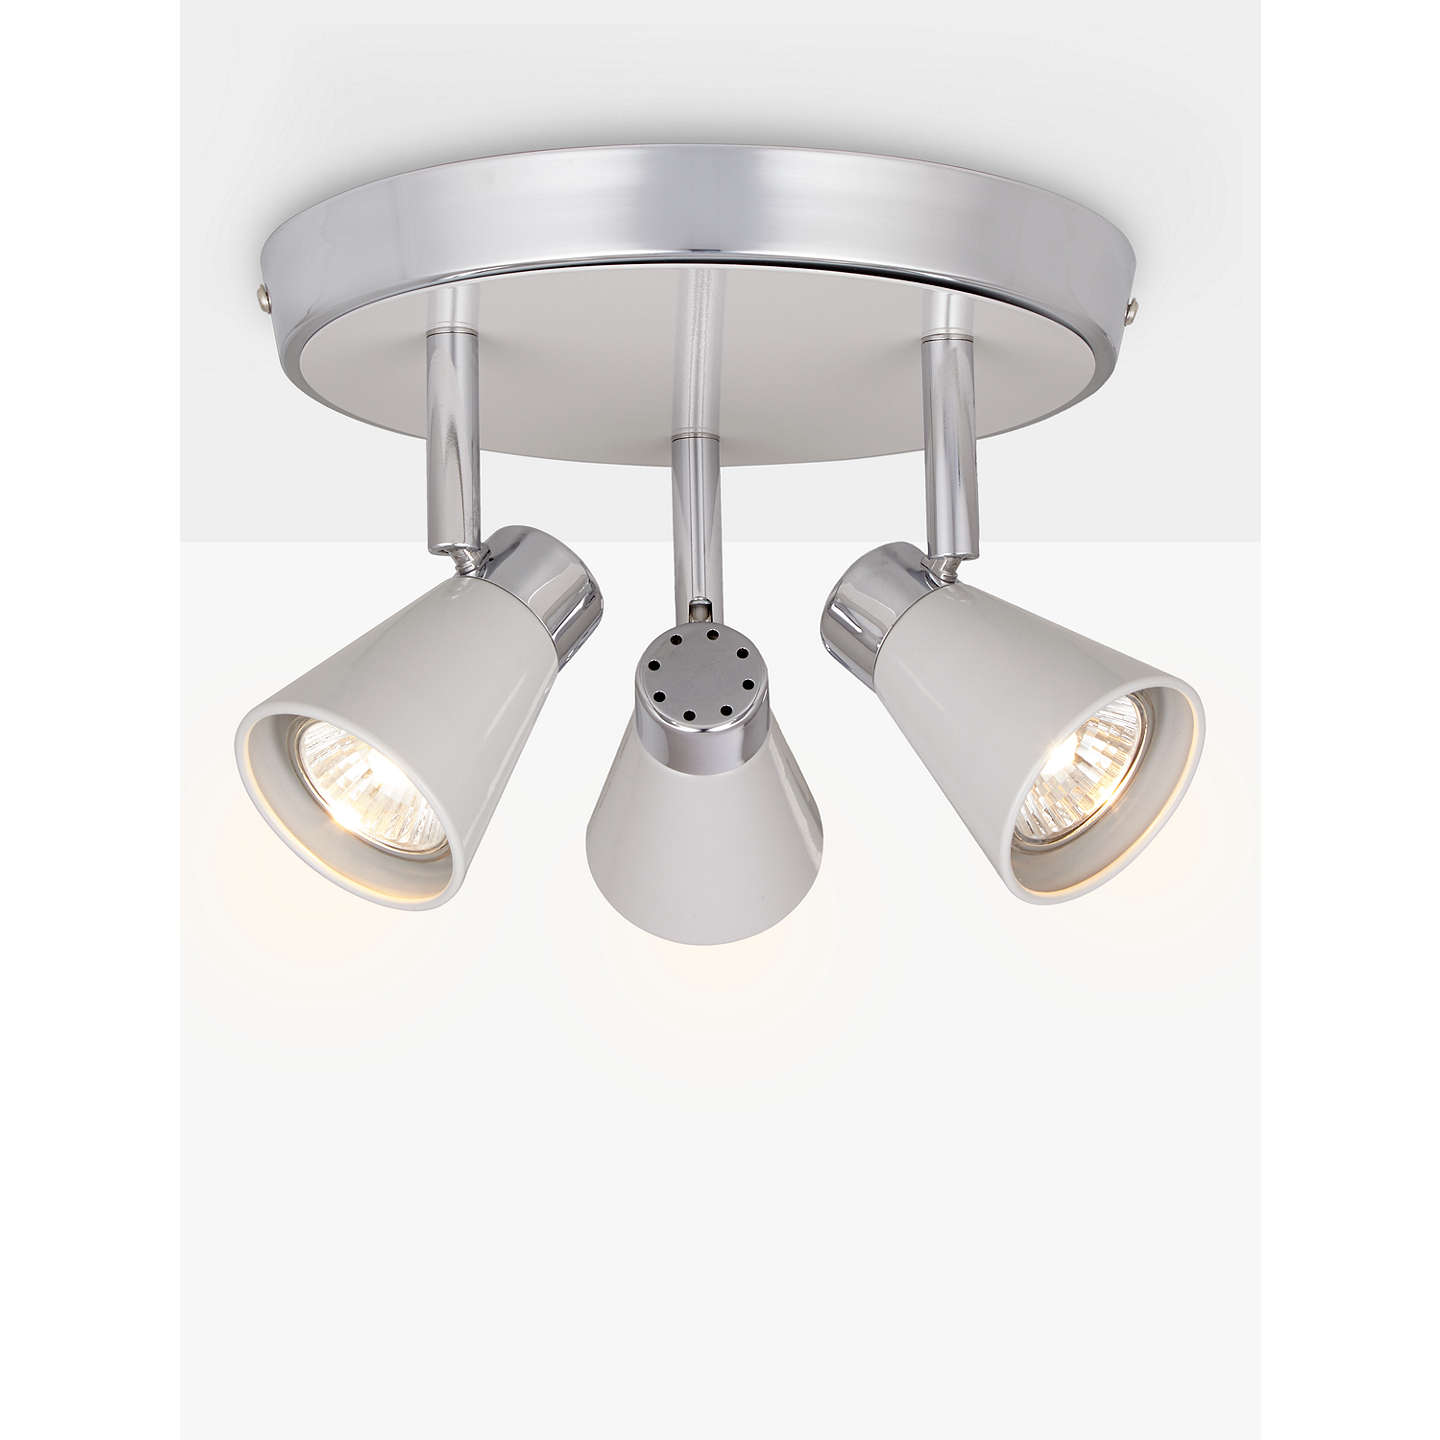 john lewis kitchen lights lewis logan gu10 led spotlight plate 3 light at 4911